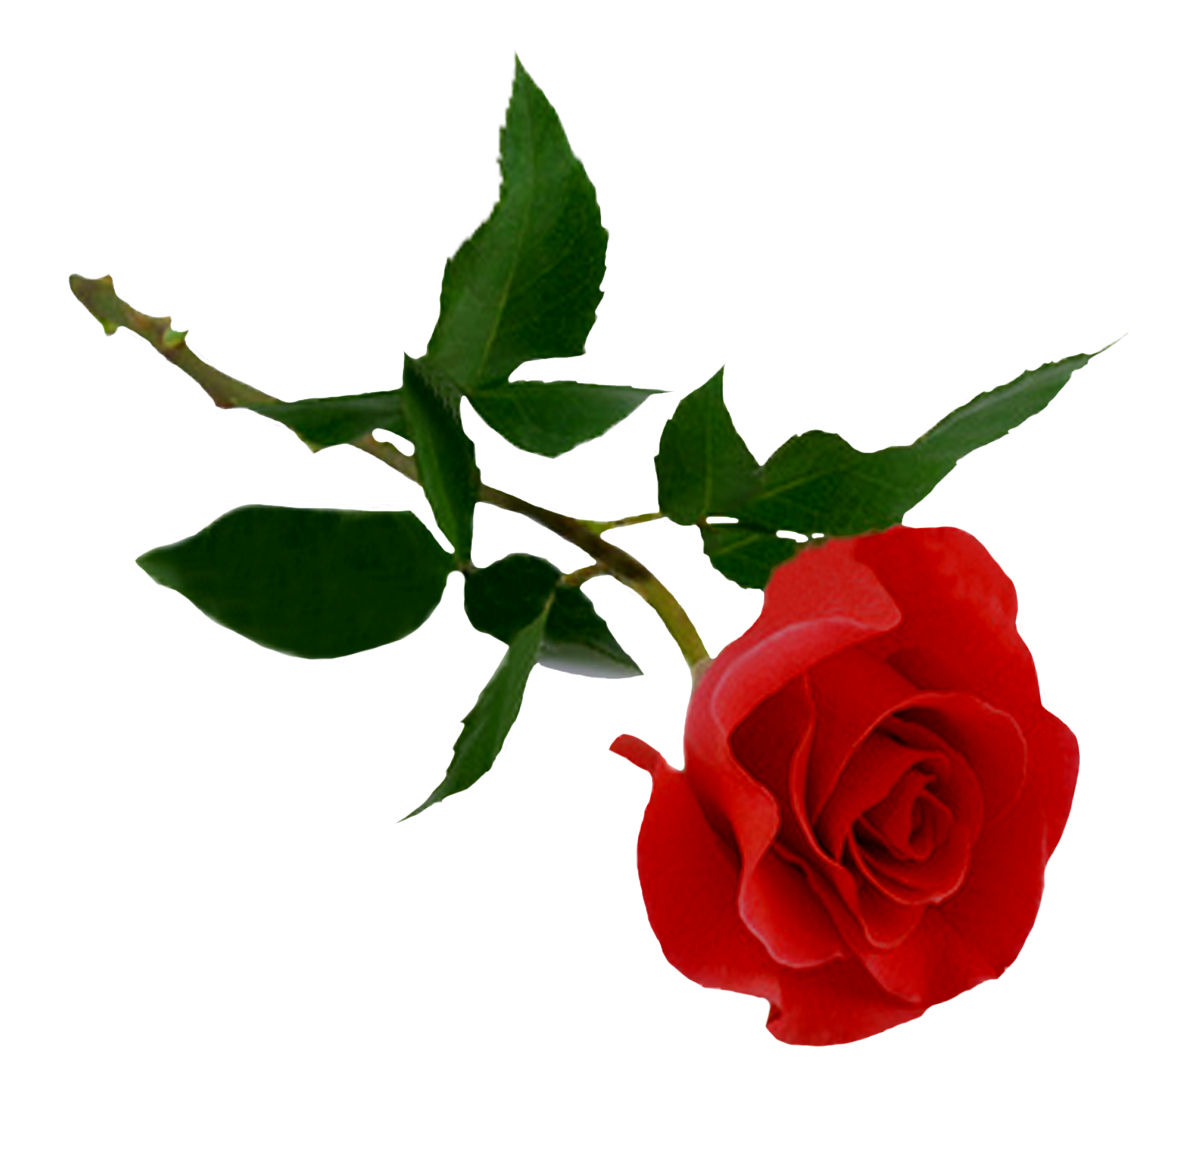 Image Best Rose Collections Png image #18965